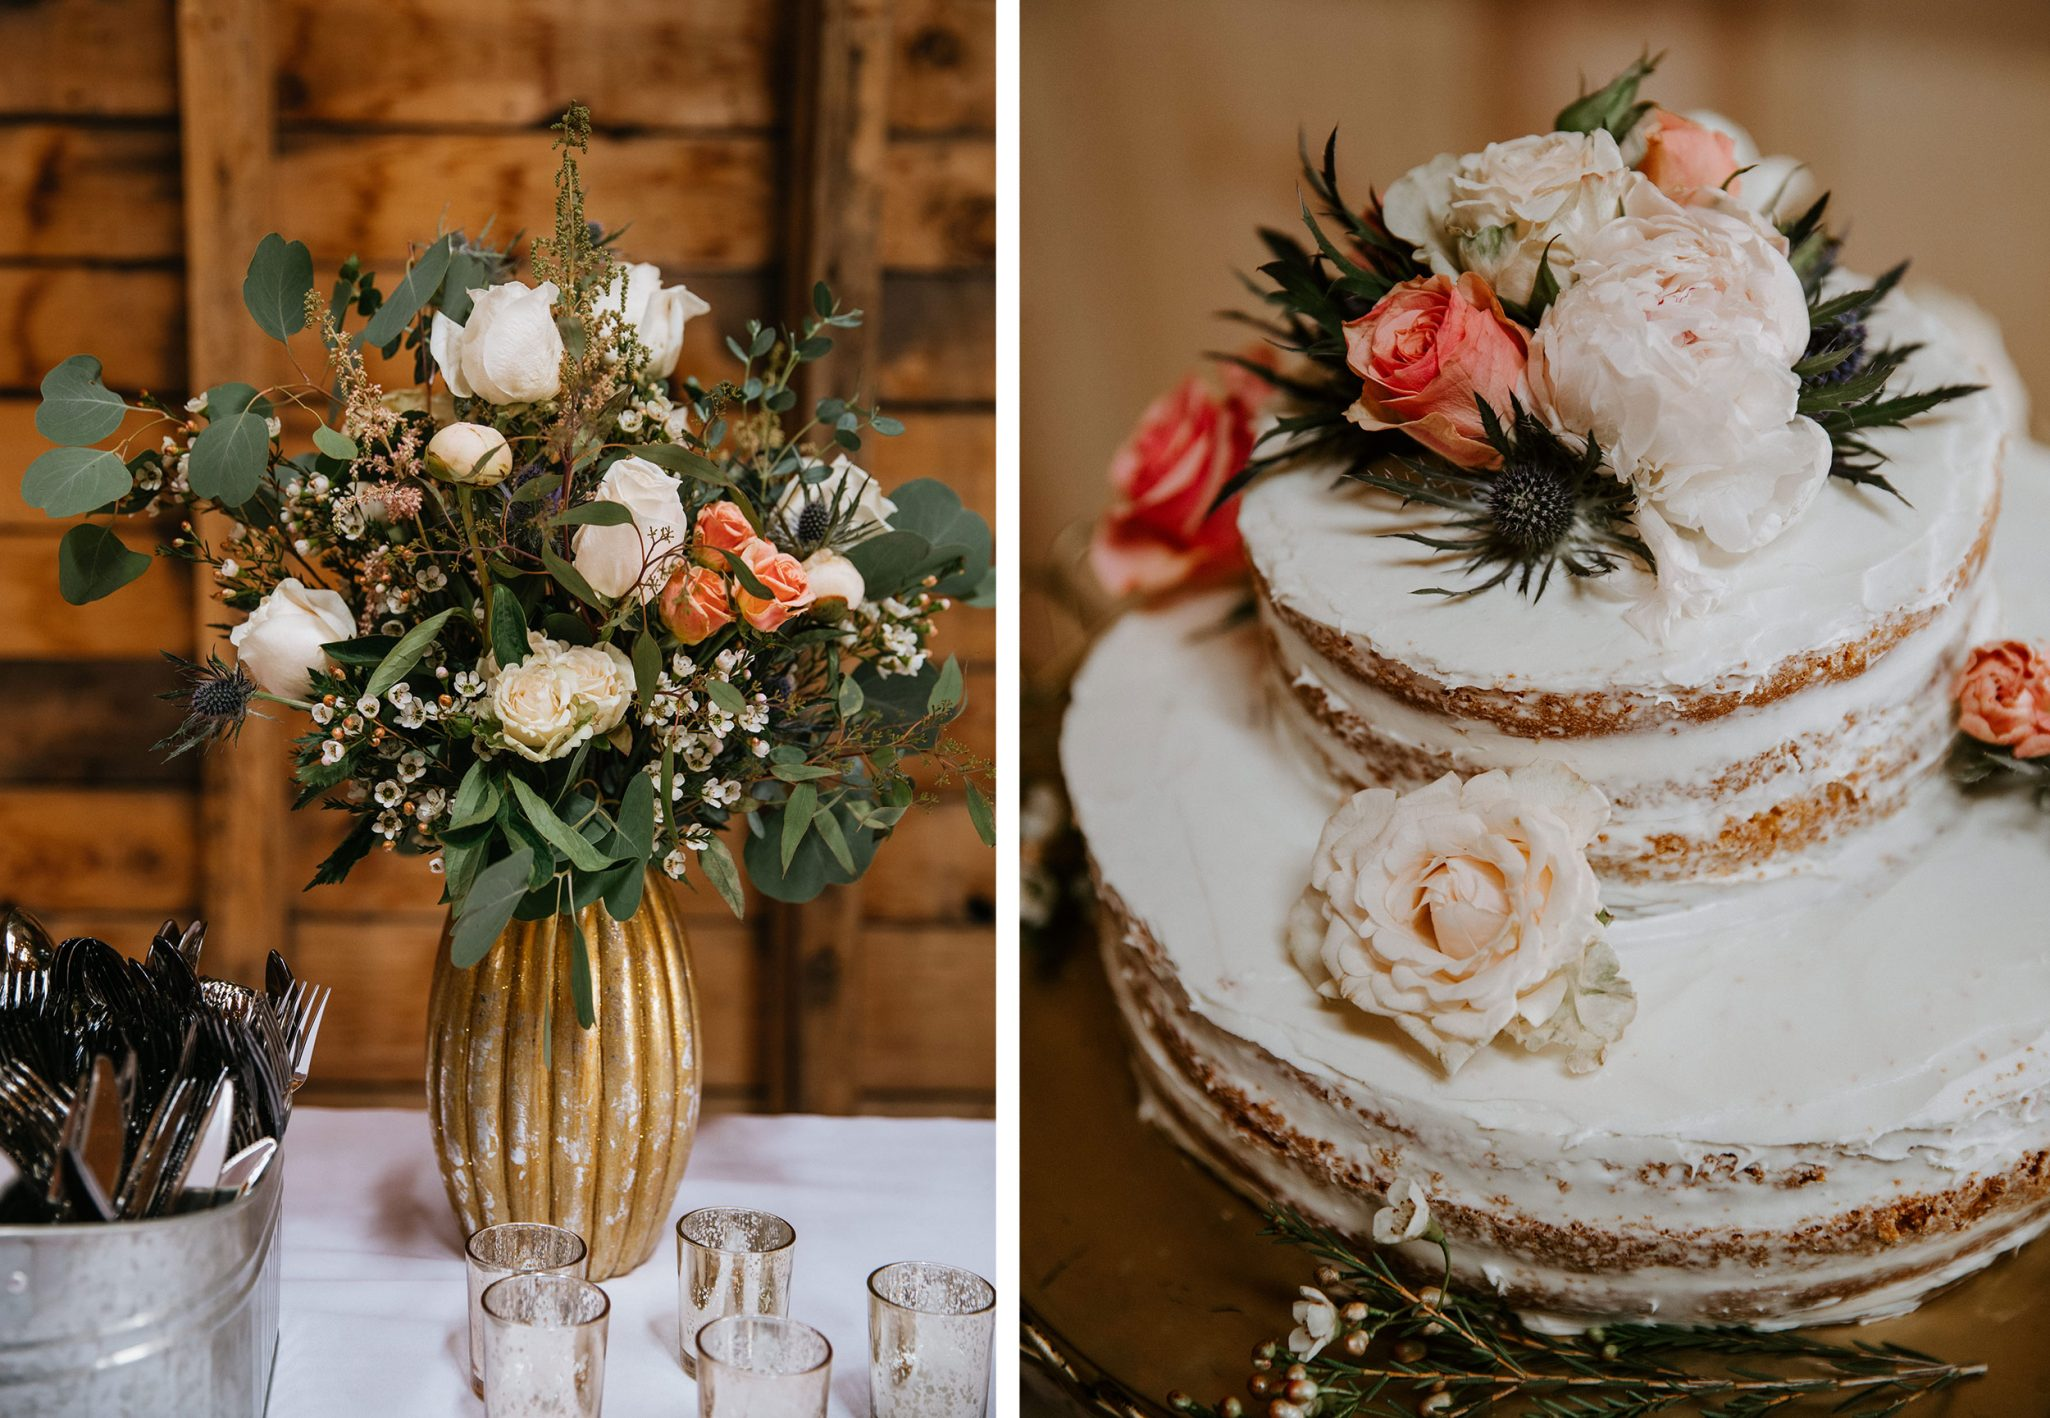 Wedding cake & florals - Durango Weddings Magazine